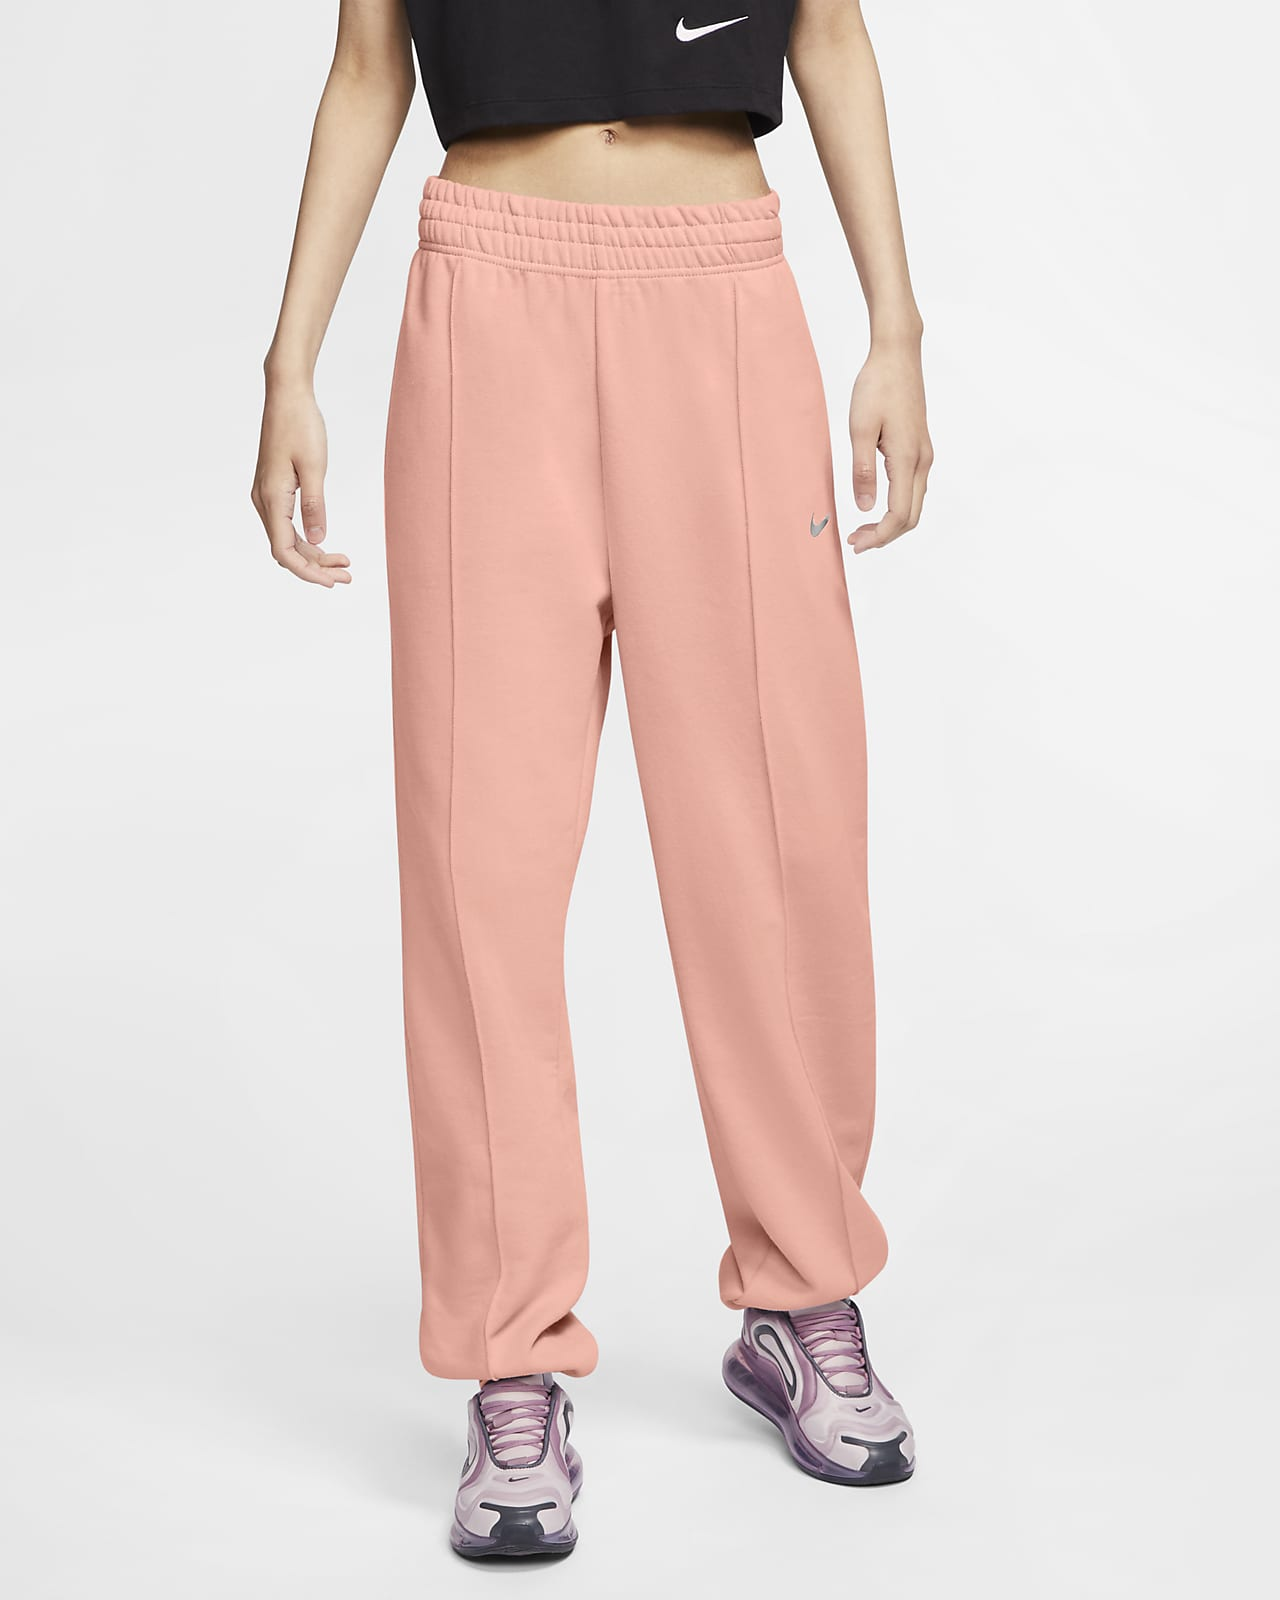 Nike Sportswear Women's Trousers